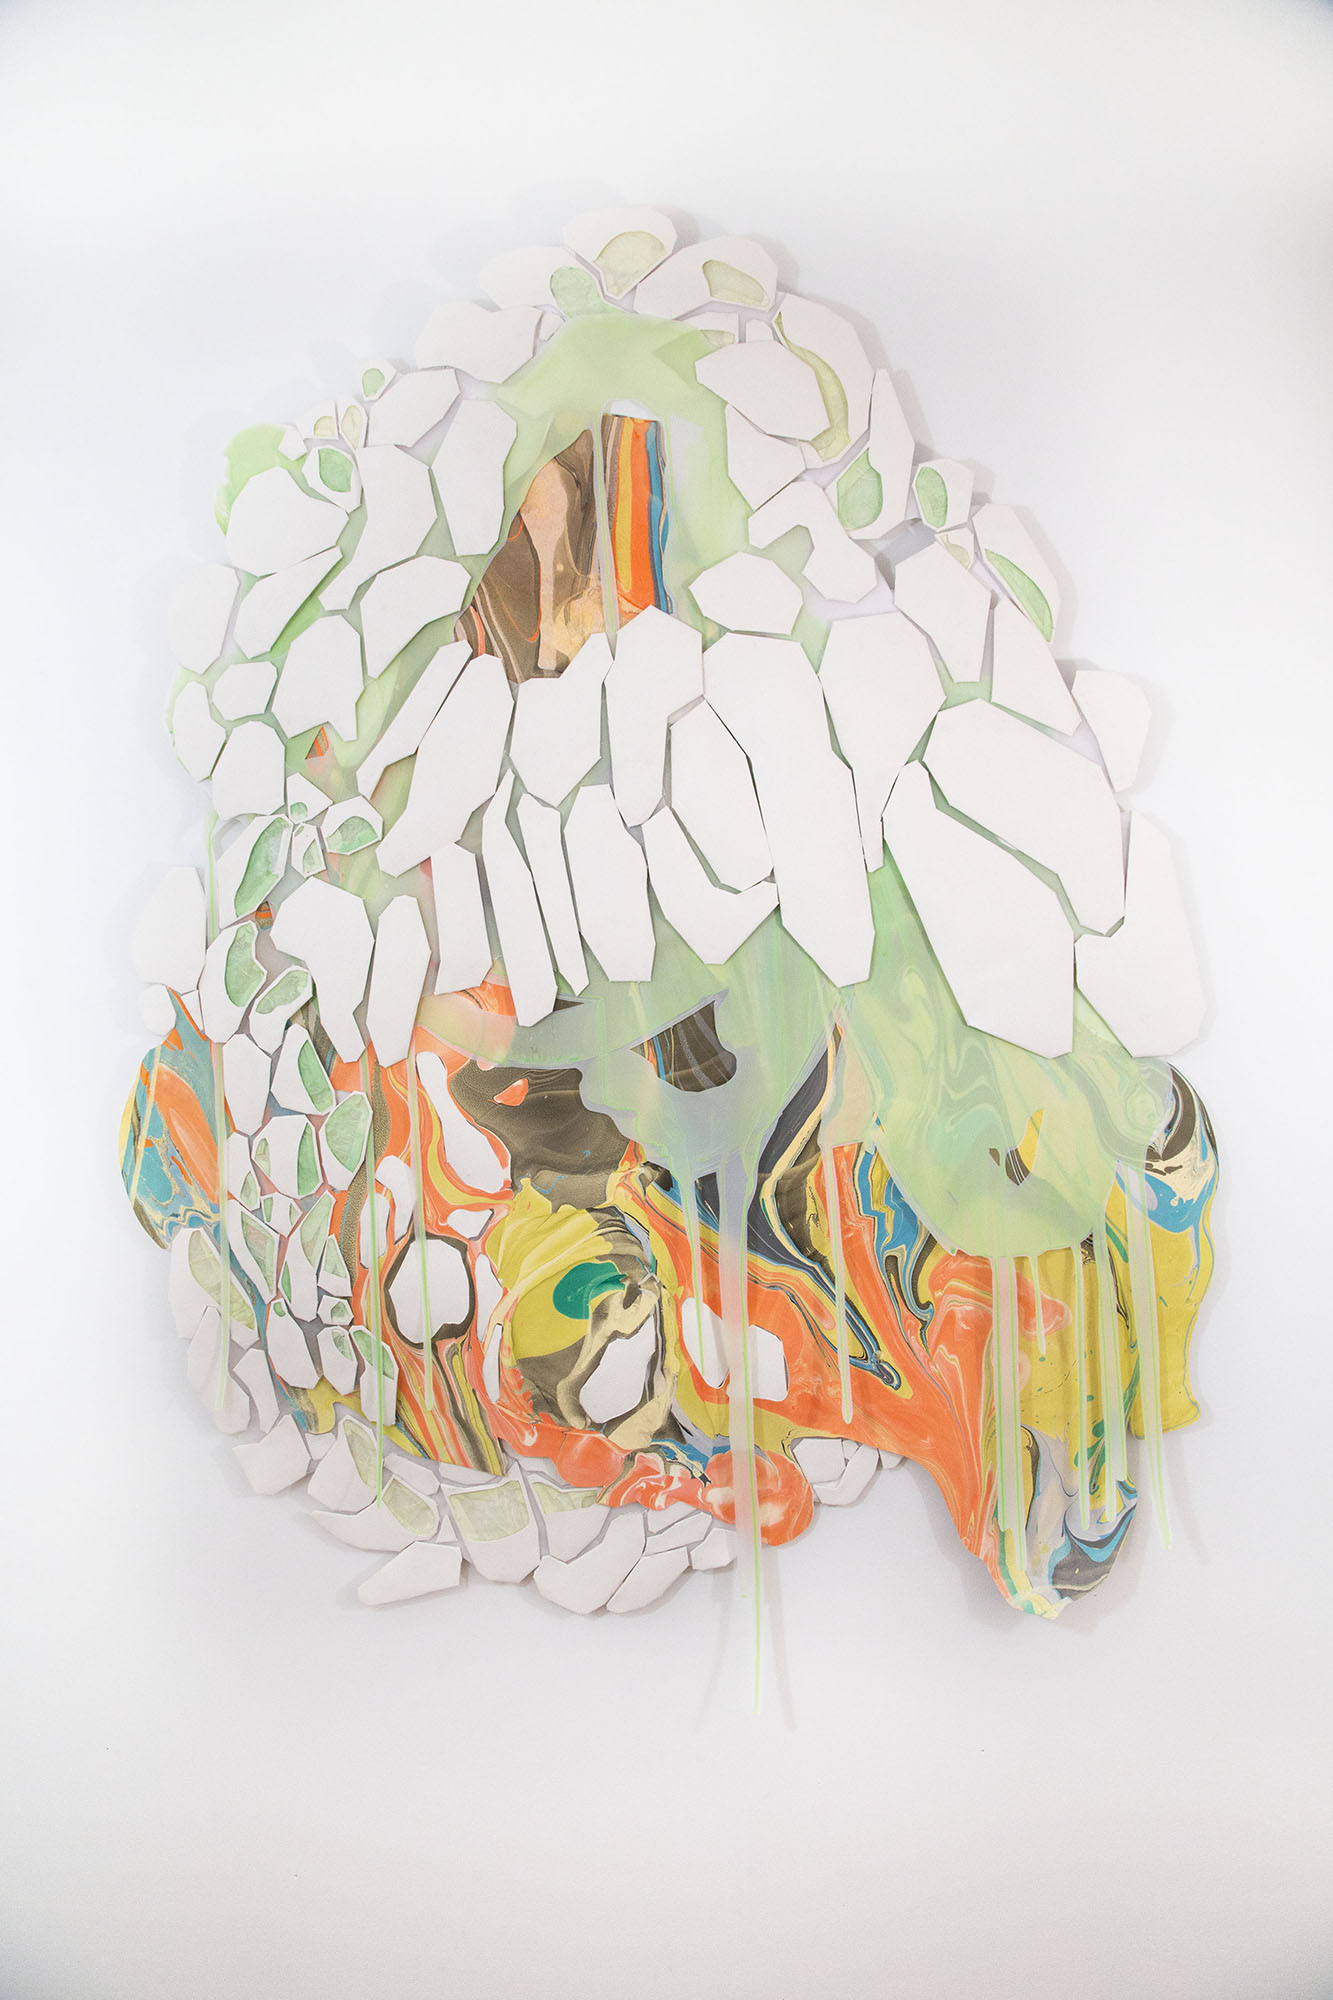 Jason Rondinelli, habitual exposure, 2015.jpg